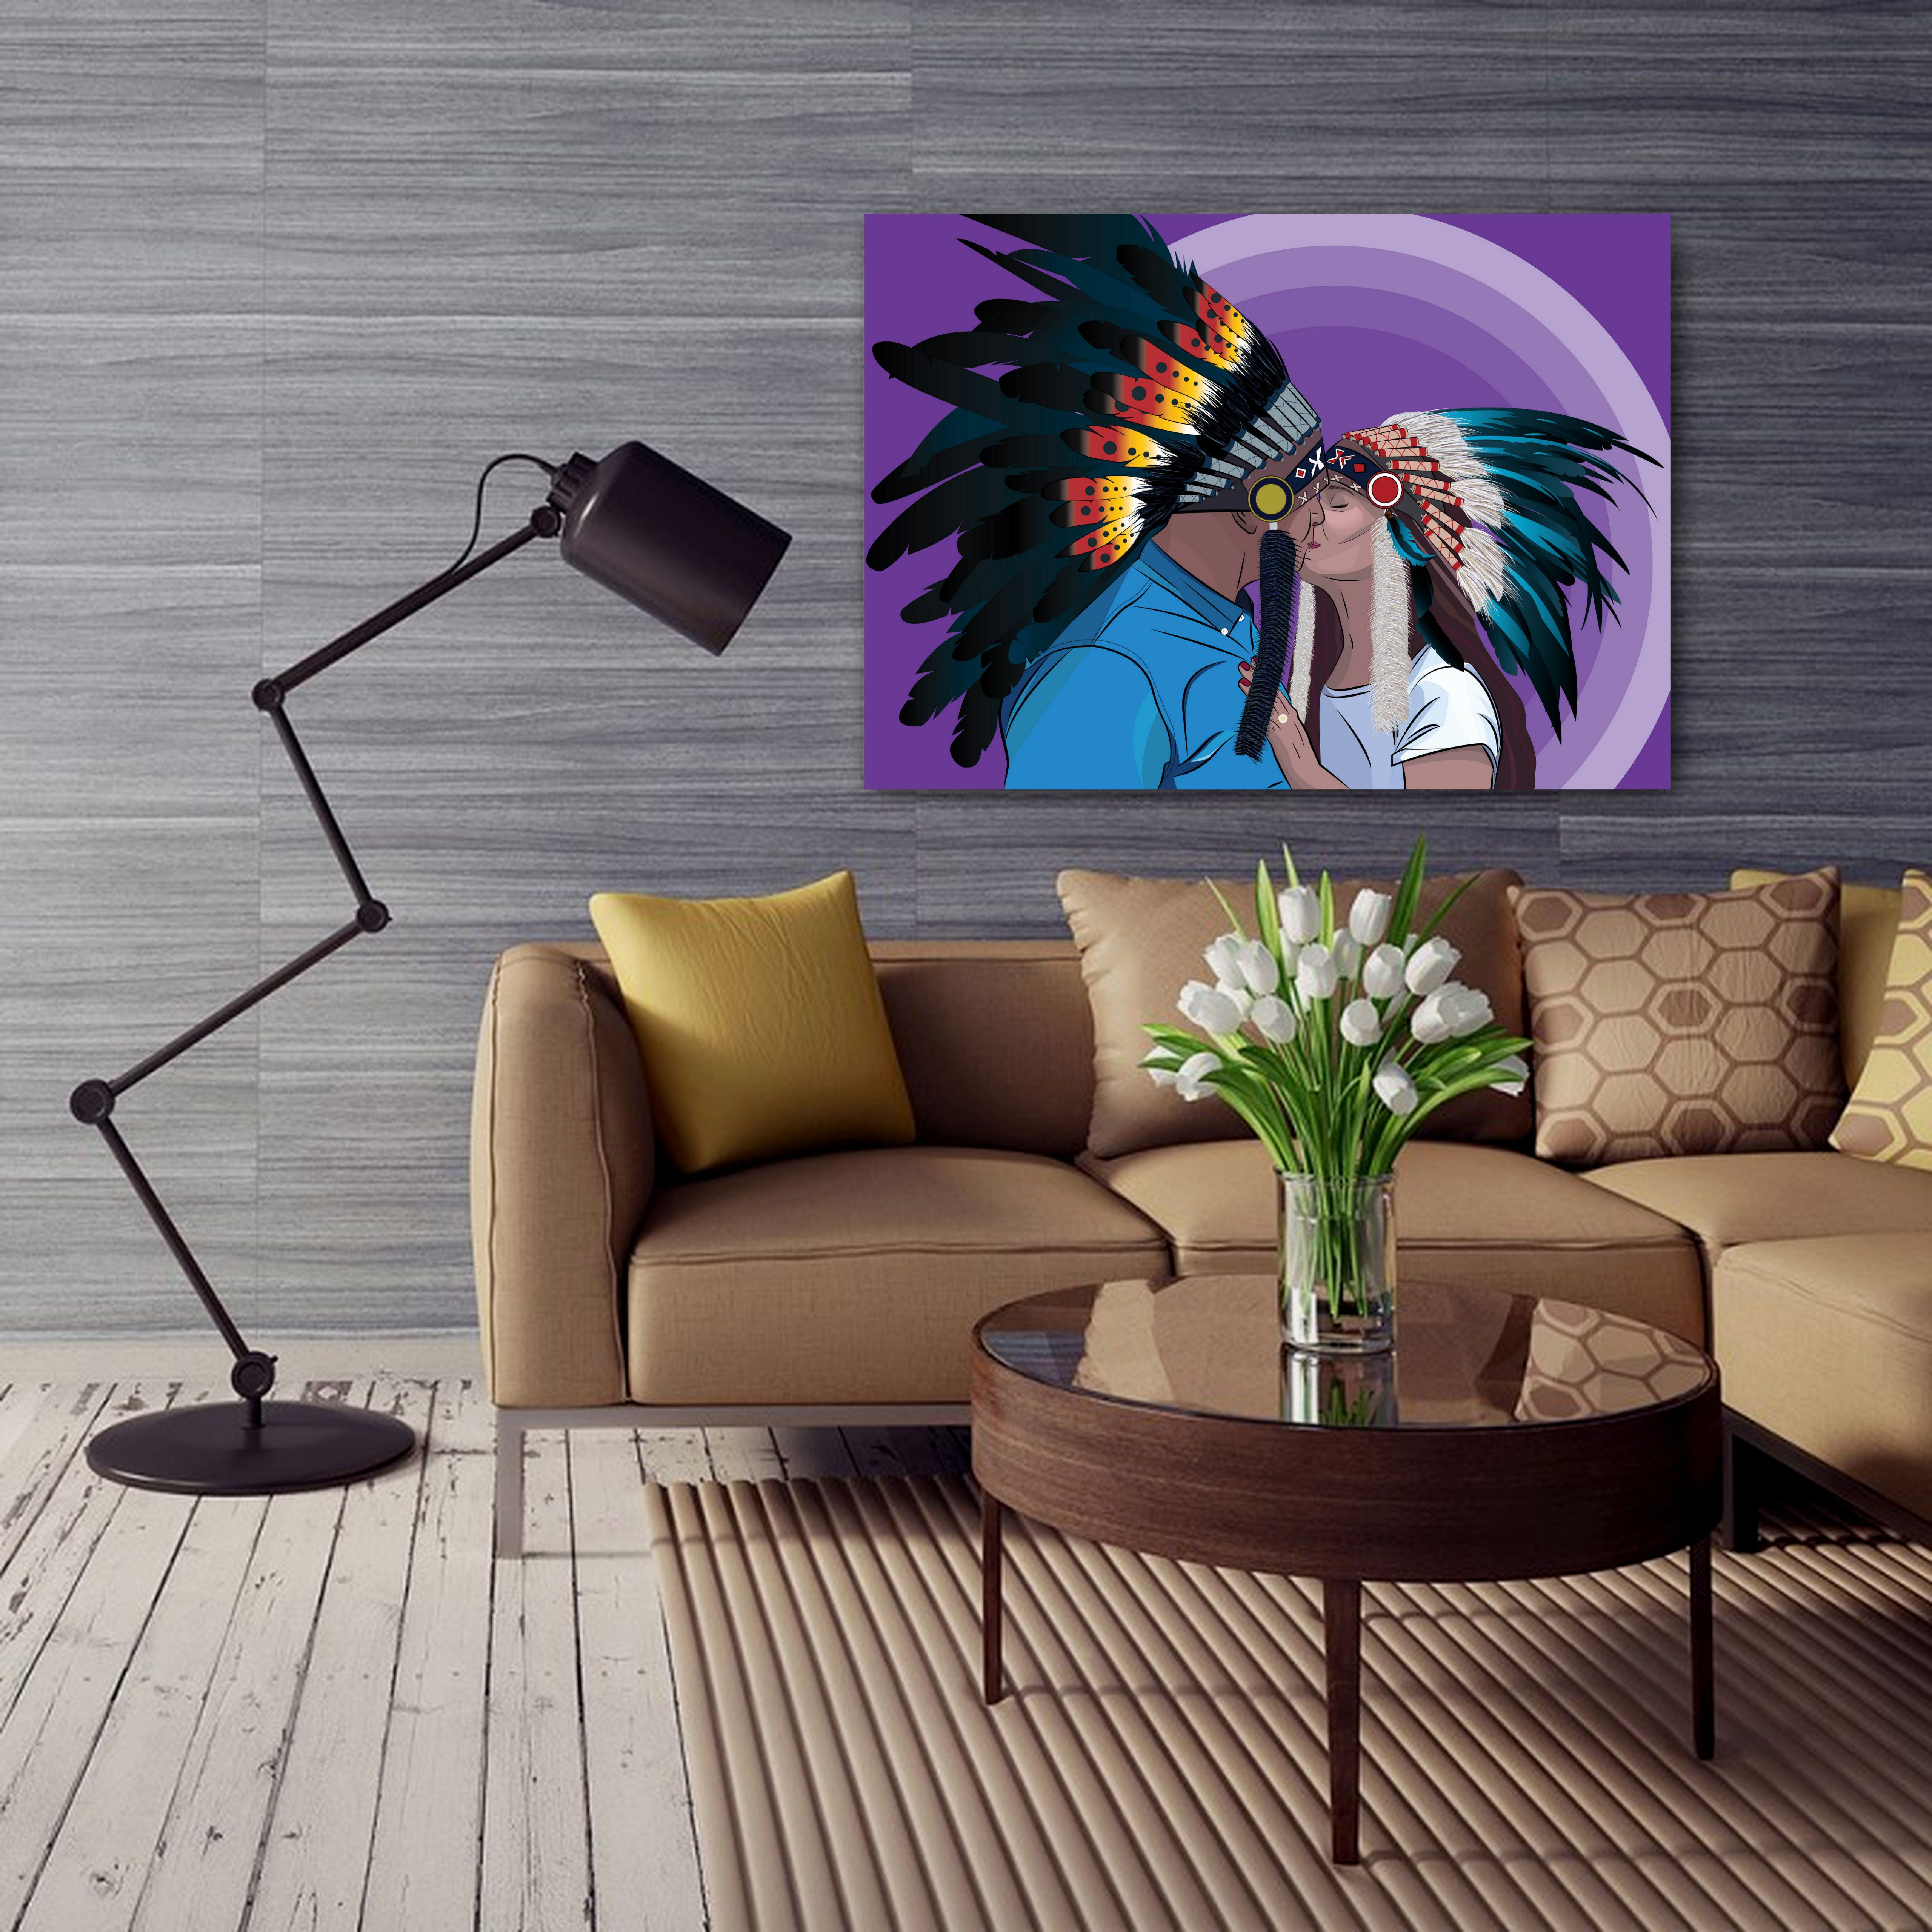 If You Want Unique And Colorful Art Print On Your Wall